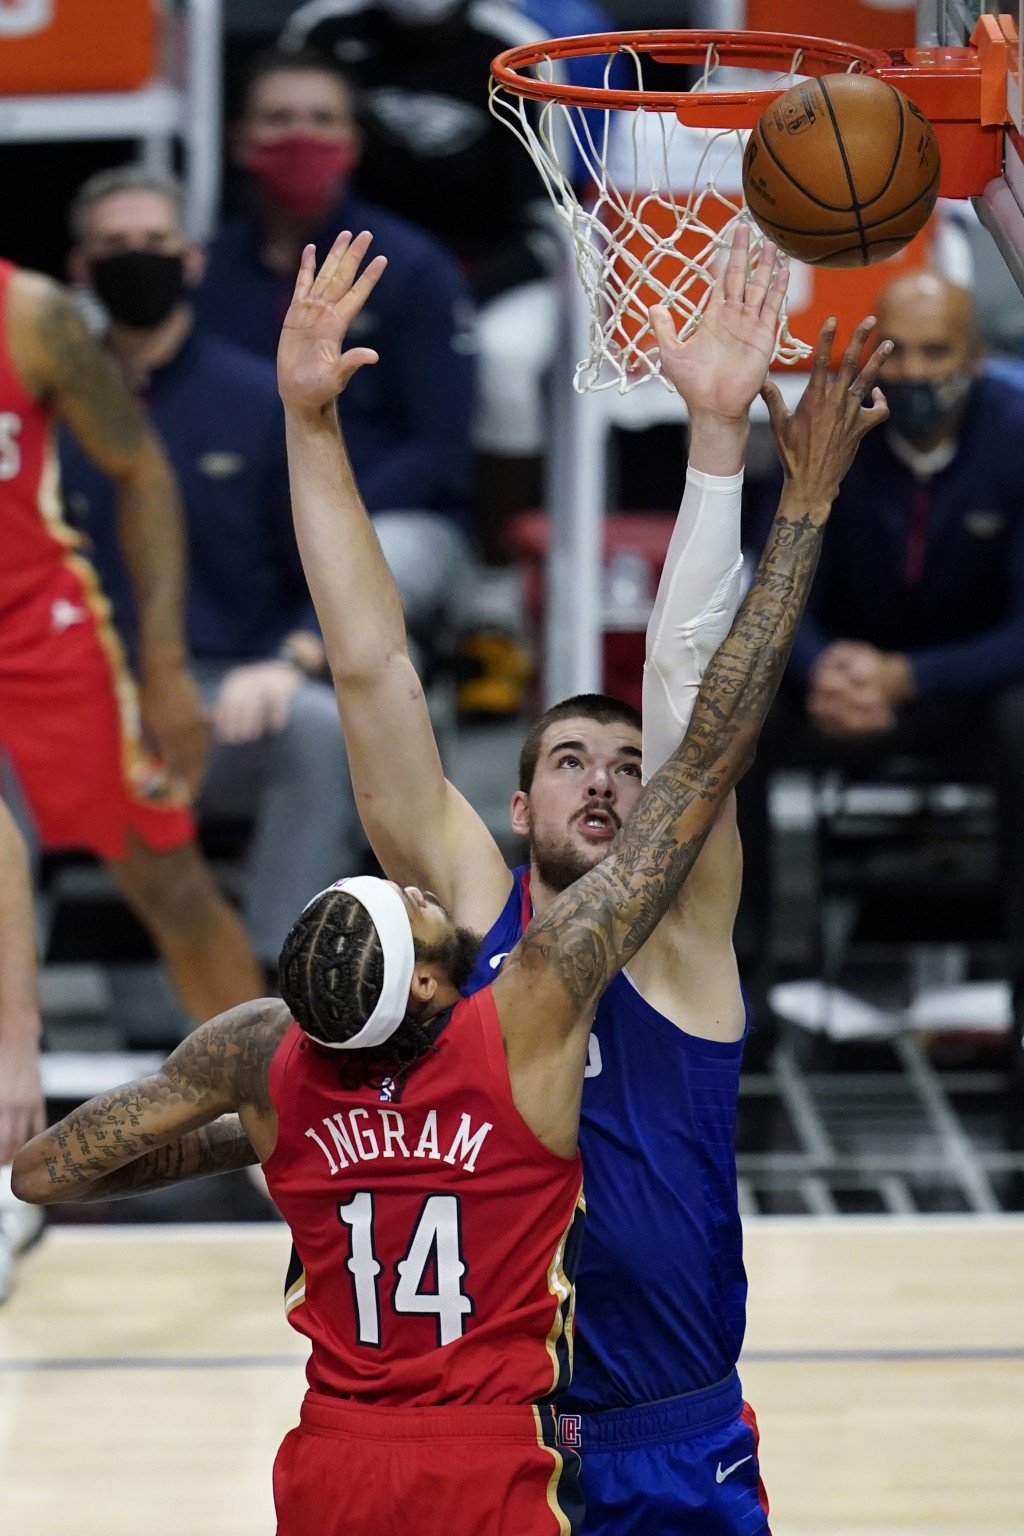 Los Angeles Clippers center Ivica Zubac, rear, defends against New Orleans Pelicans forward Brandon Ingram (14) during the second quarter of an NBA ba...